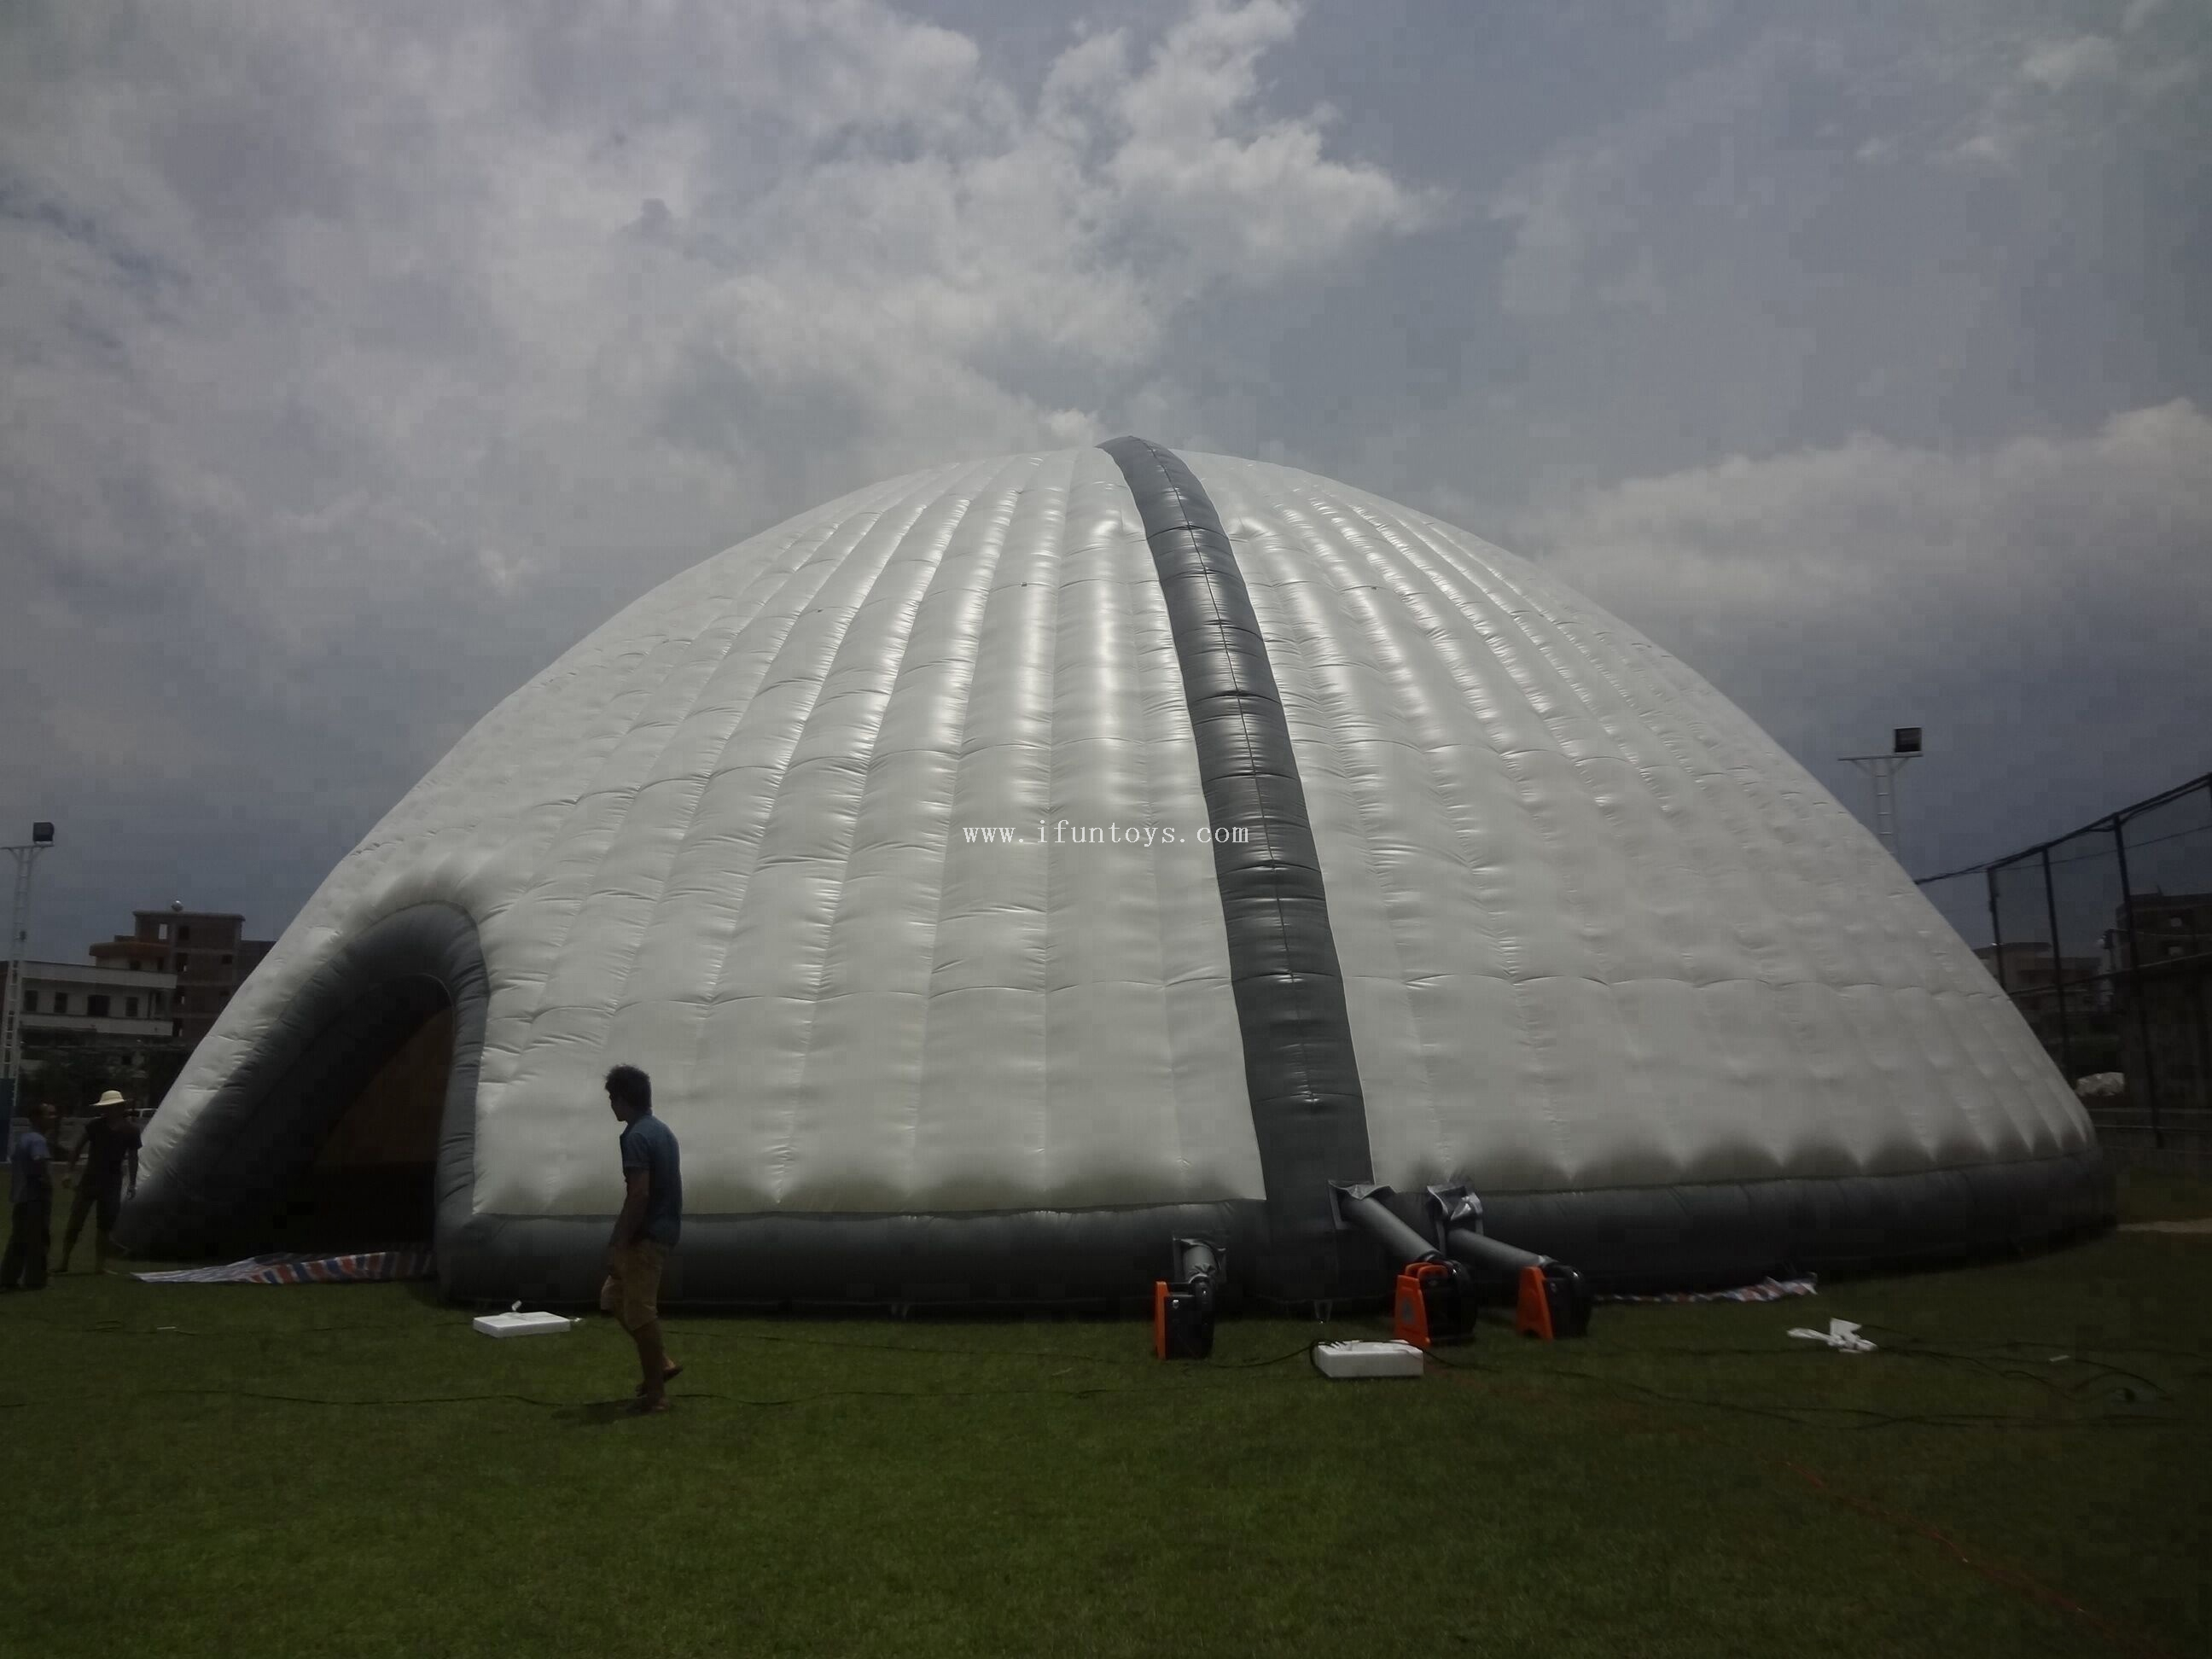 Giant Inflatable Dome Tent / Inflatable Dome Building Tent for Wedding / Inflatable Marquee Tent for Outdoor Party